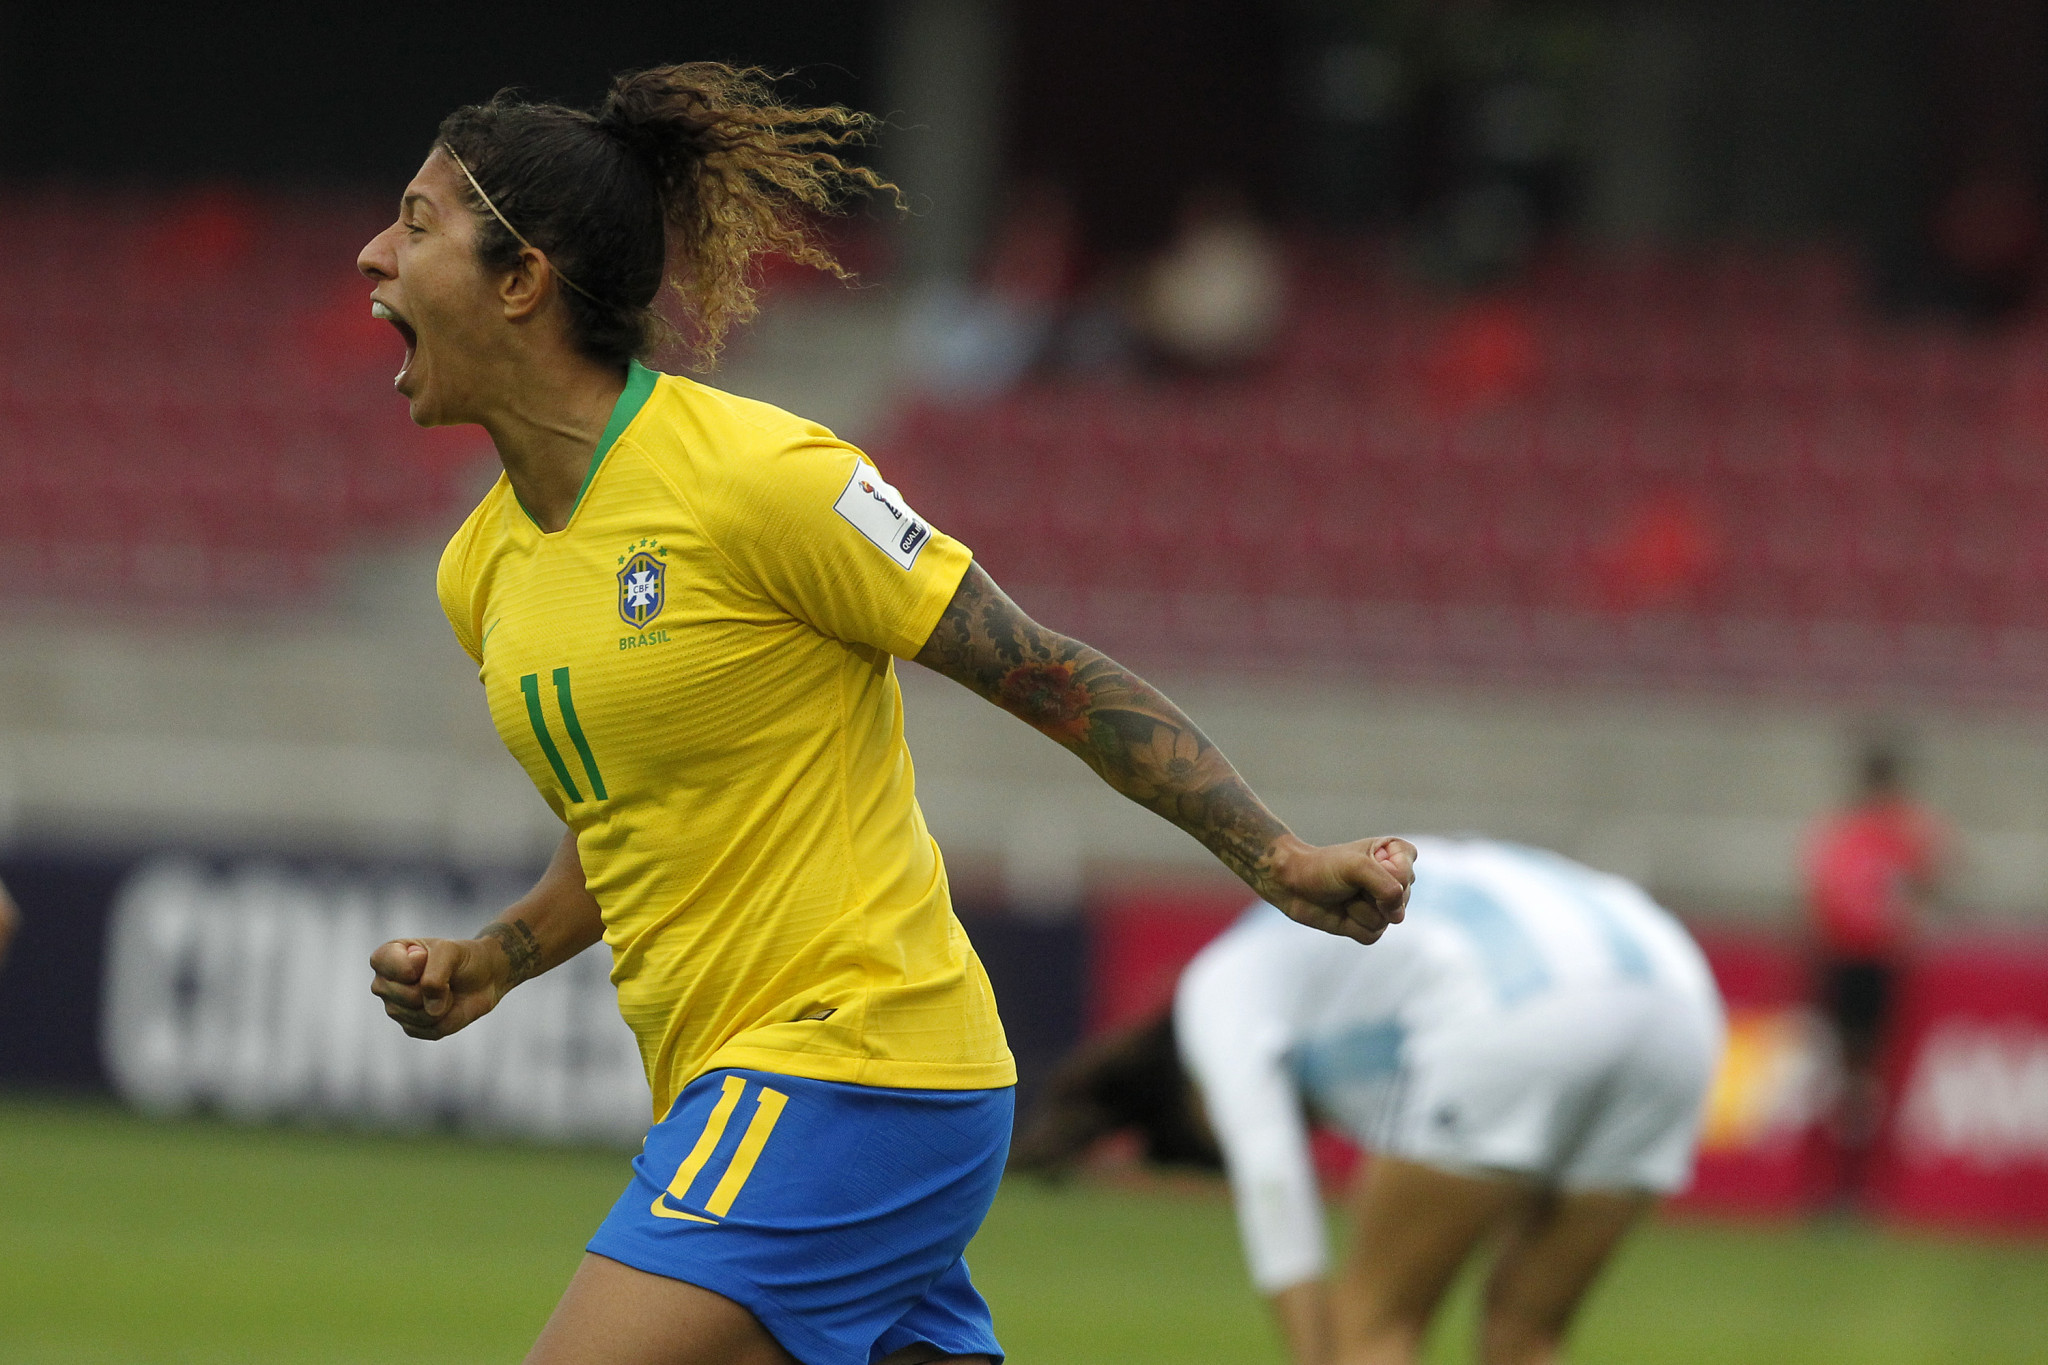 Cristiane scored Brazil's first goal in their 3-0 victory over Argentina to qualify for next year's FIFA World Cup ©Getty Images